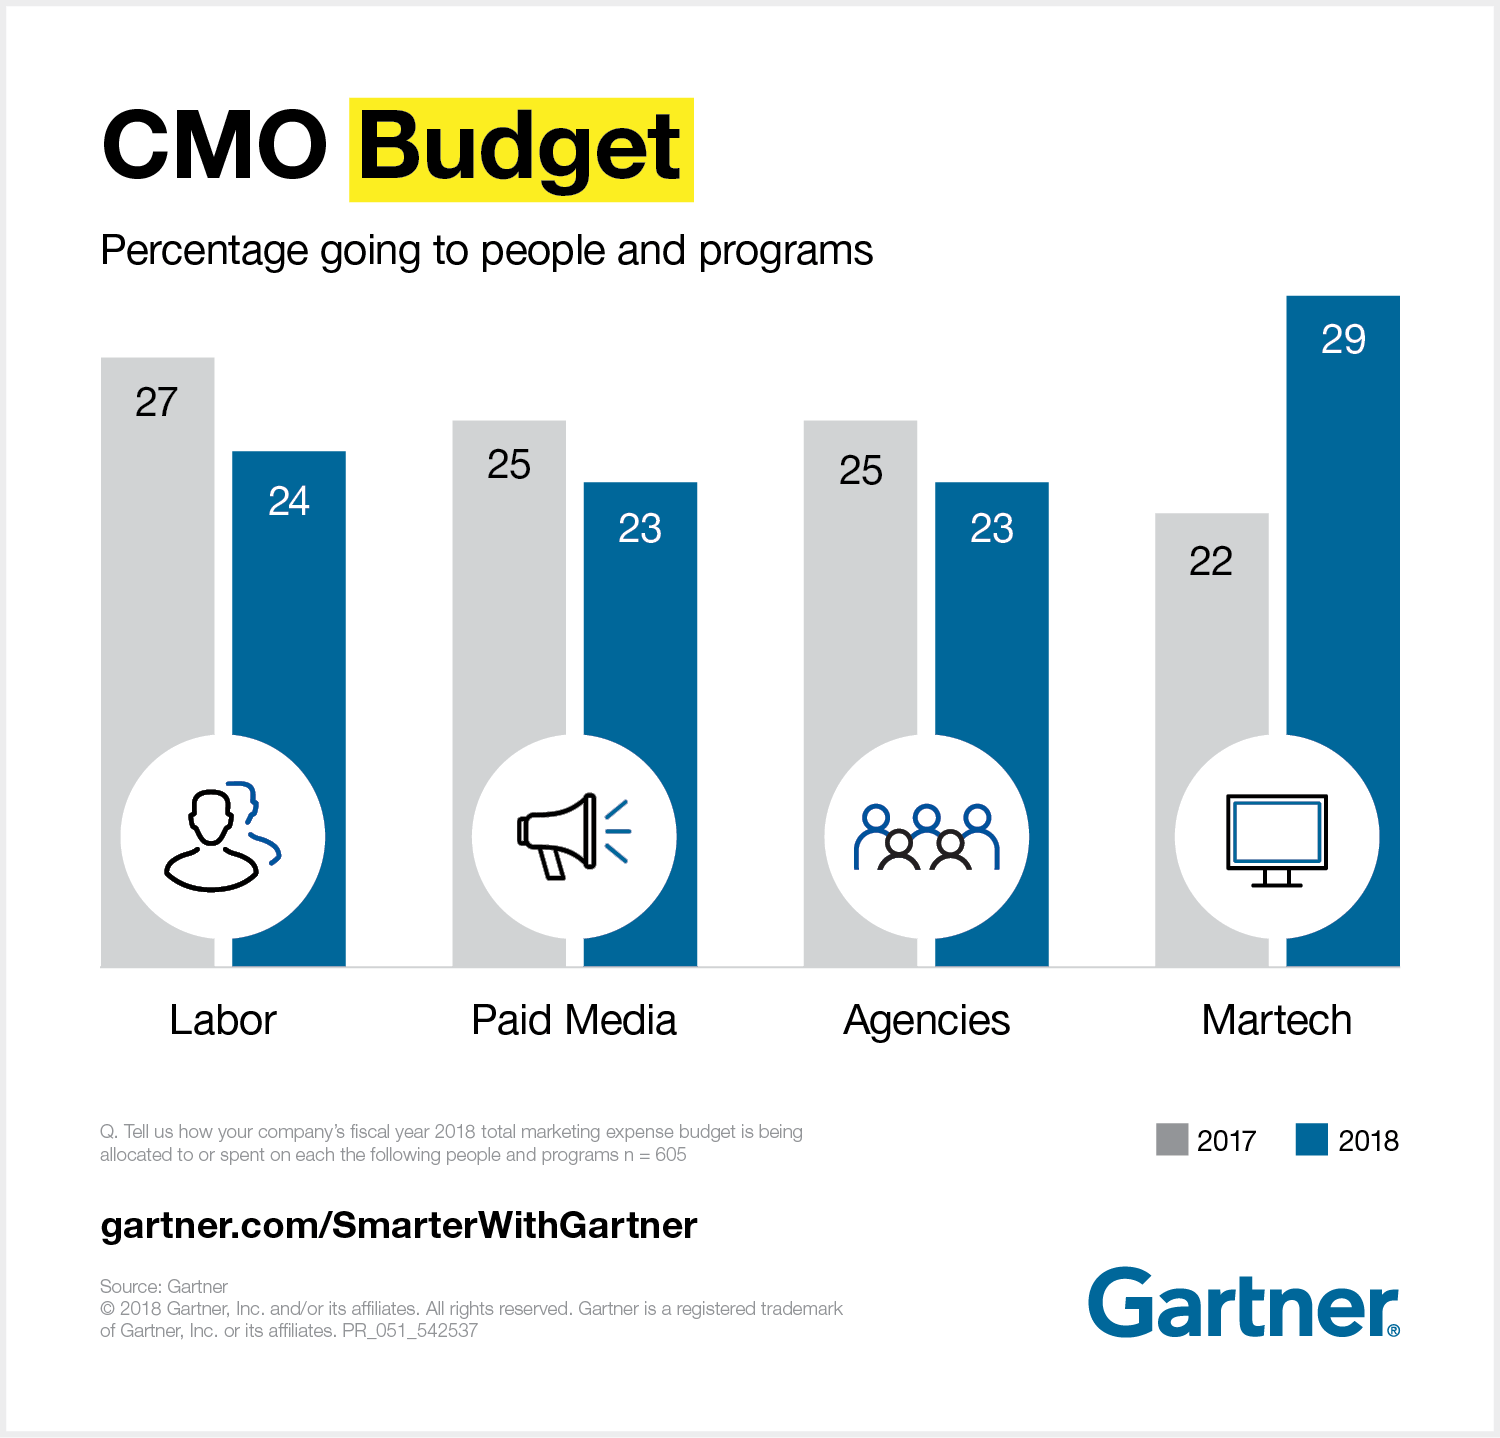 Percentage of CMO Budget going to people and programs.